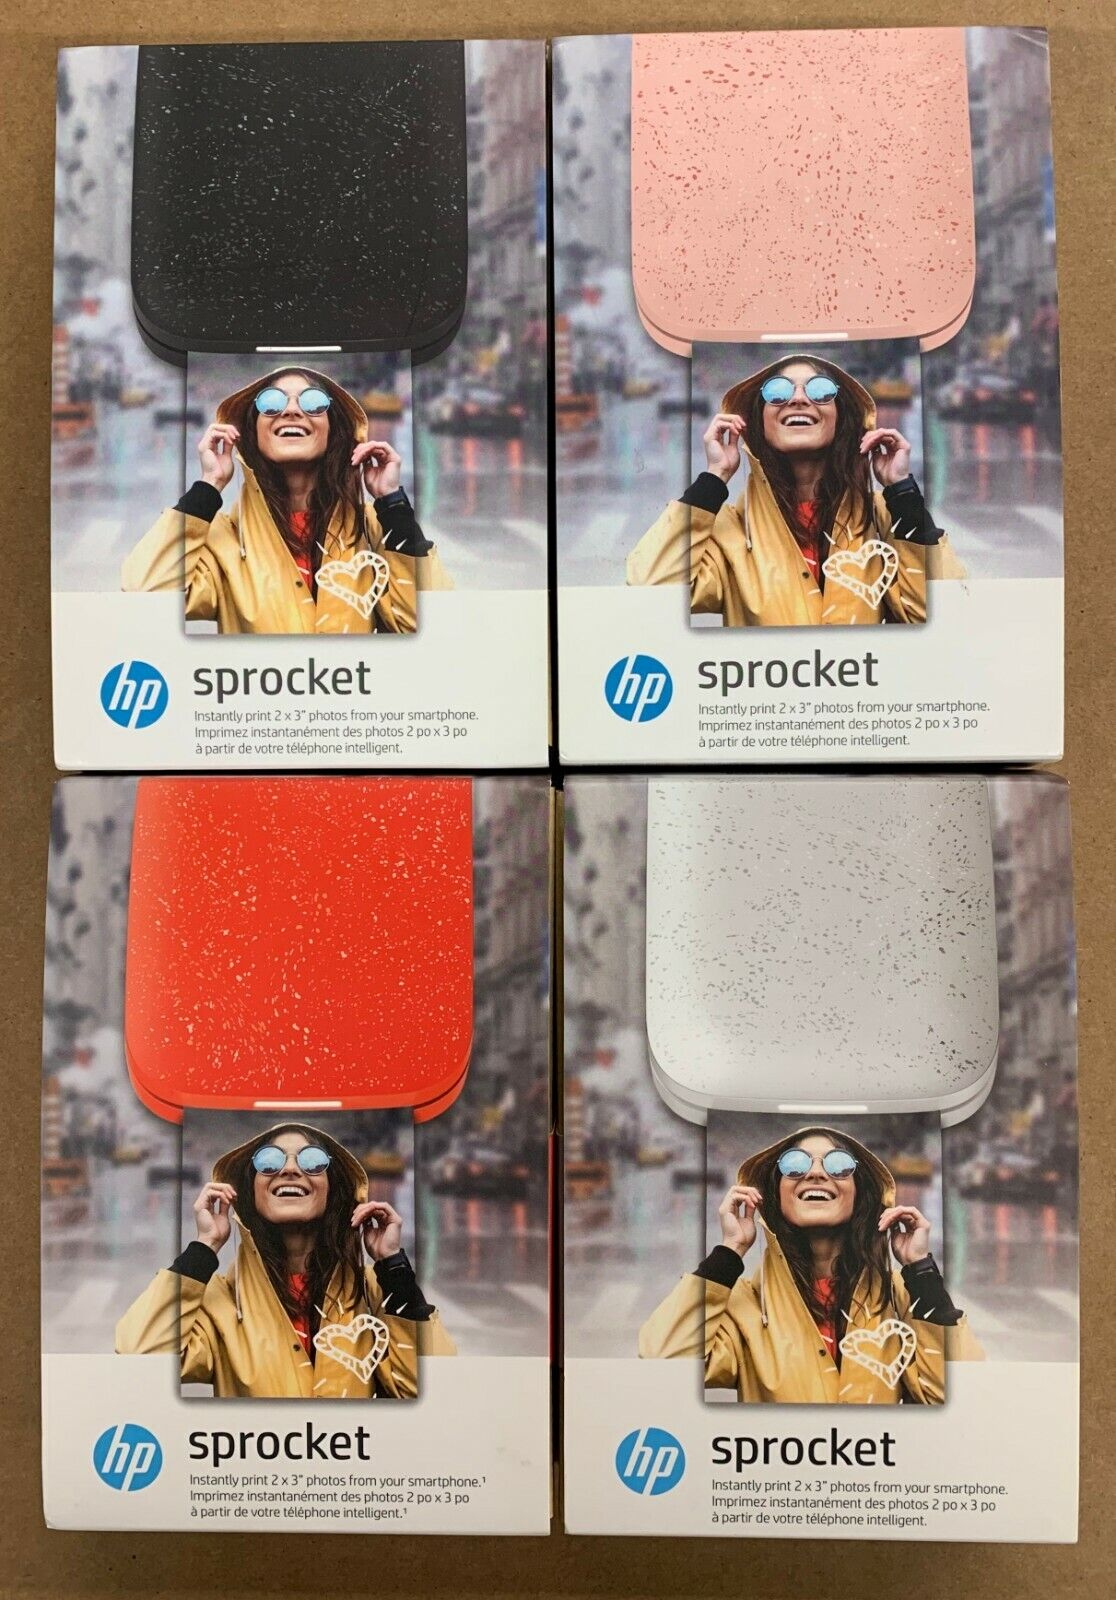 sprocket 2nd edition instant photo printer new